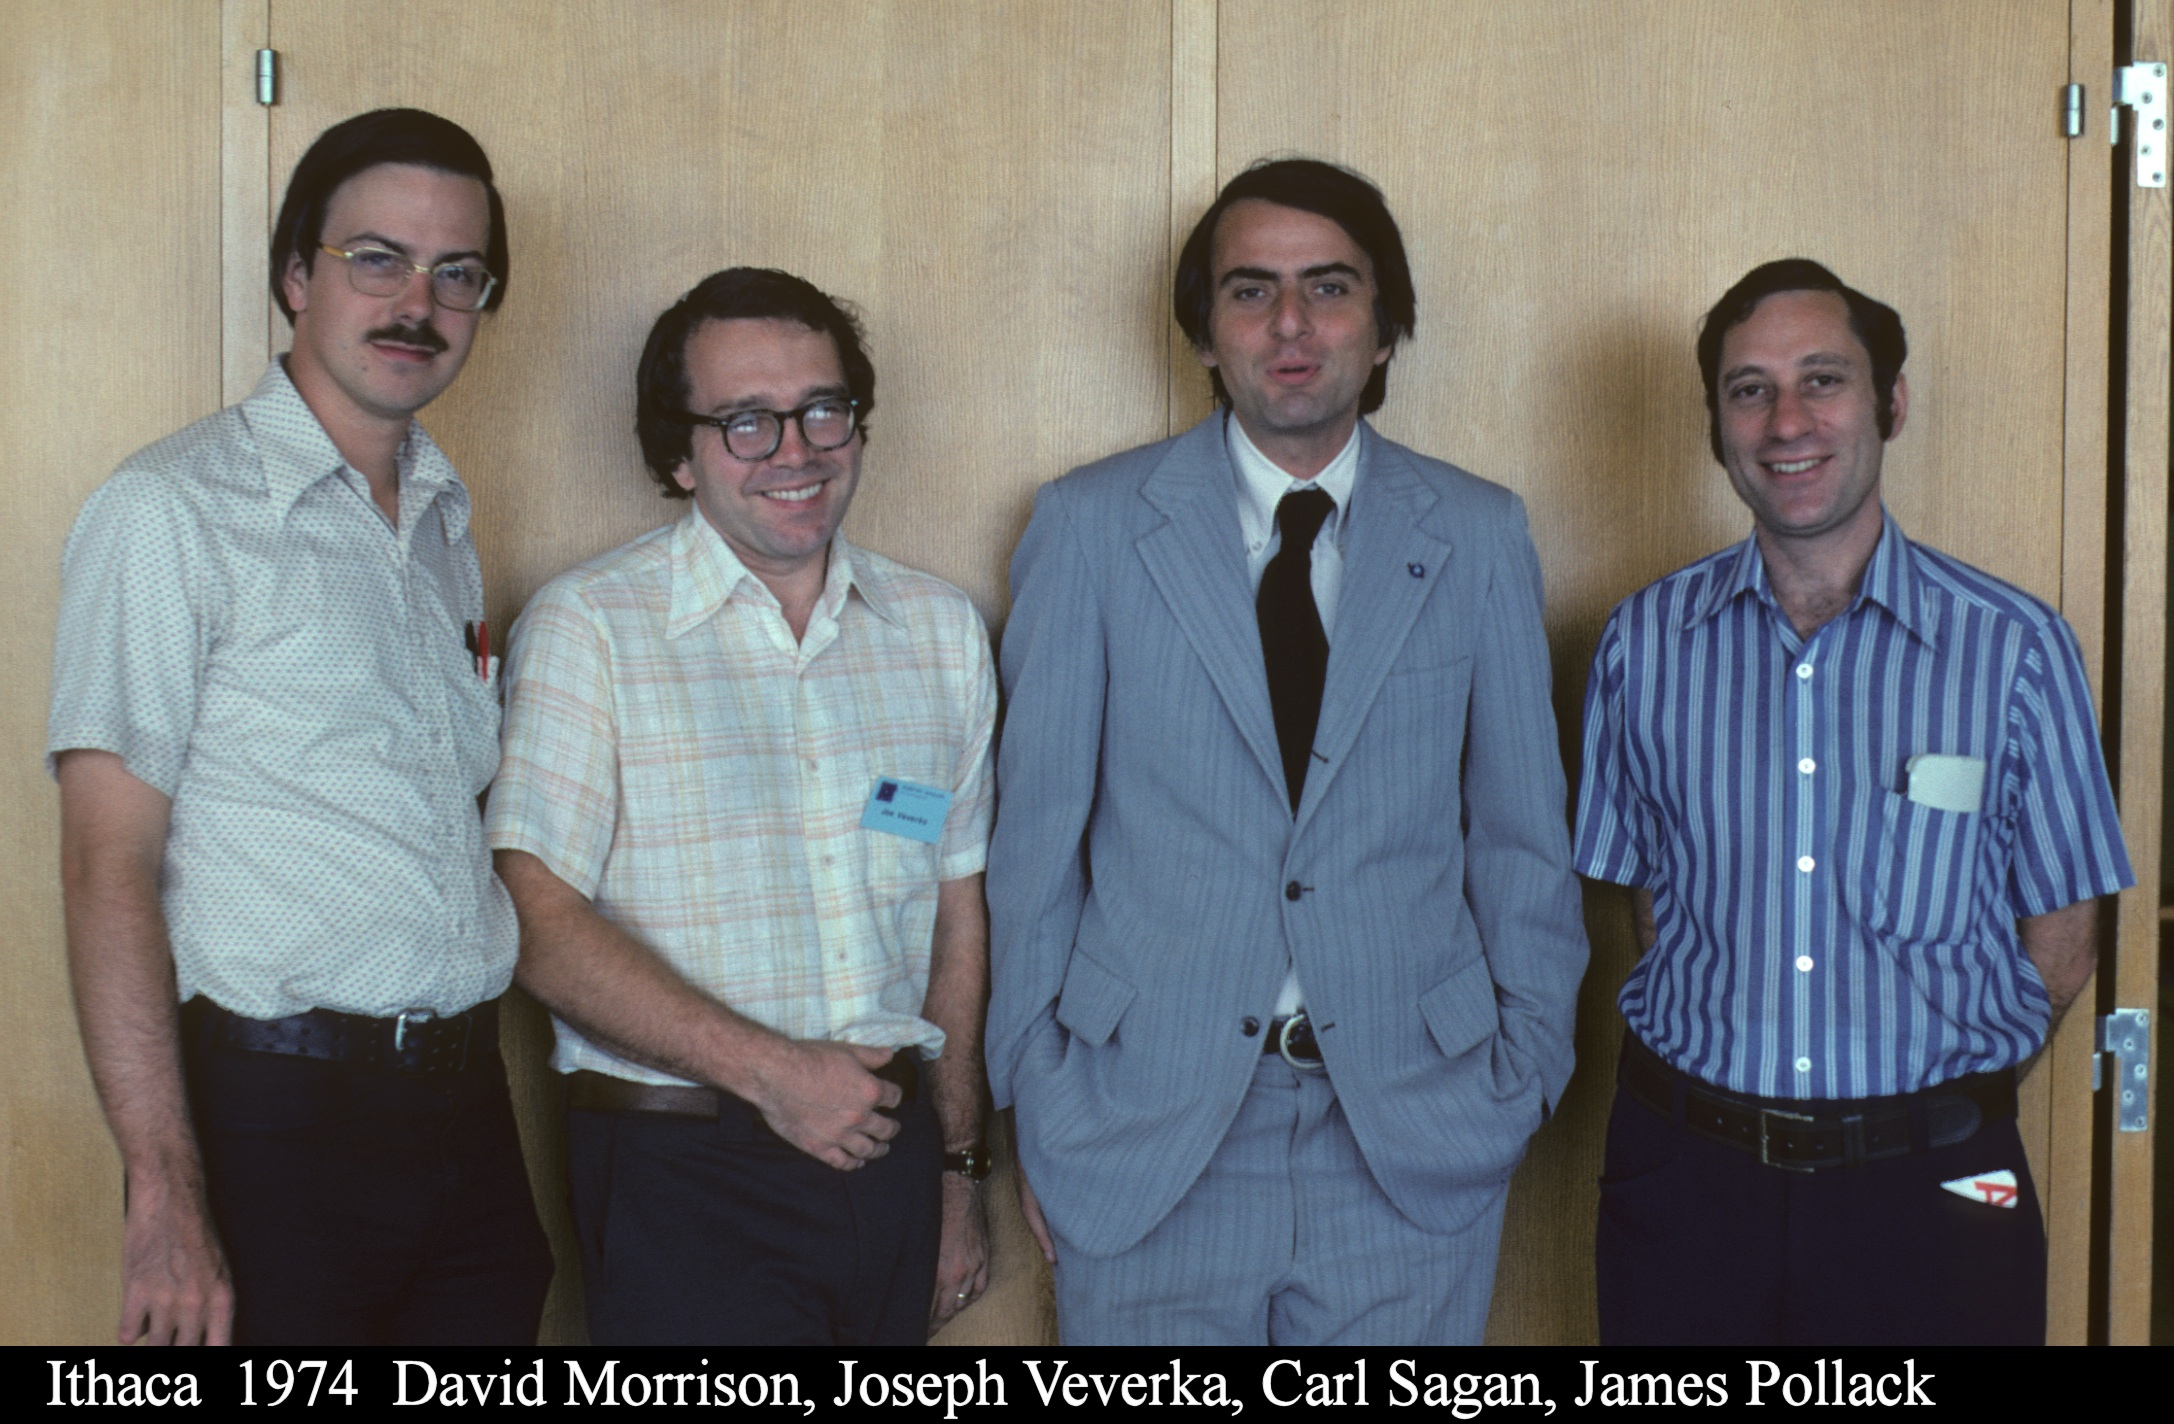 Carl Sagan (third from left) with three of his former students: David Morrison, Joseph Veverka, and James Pollack. Photo by David Morrison